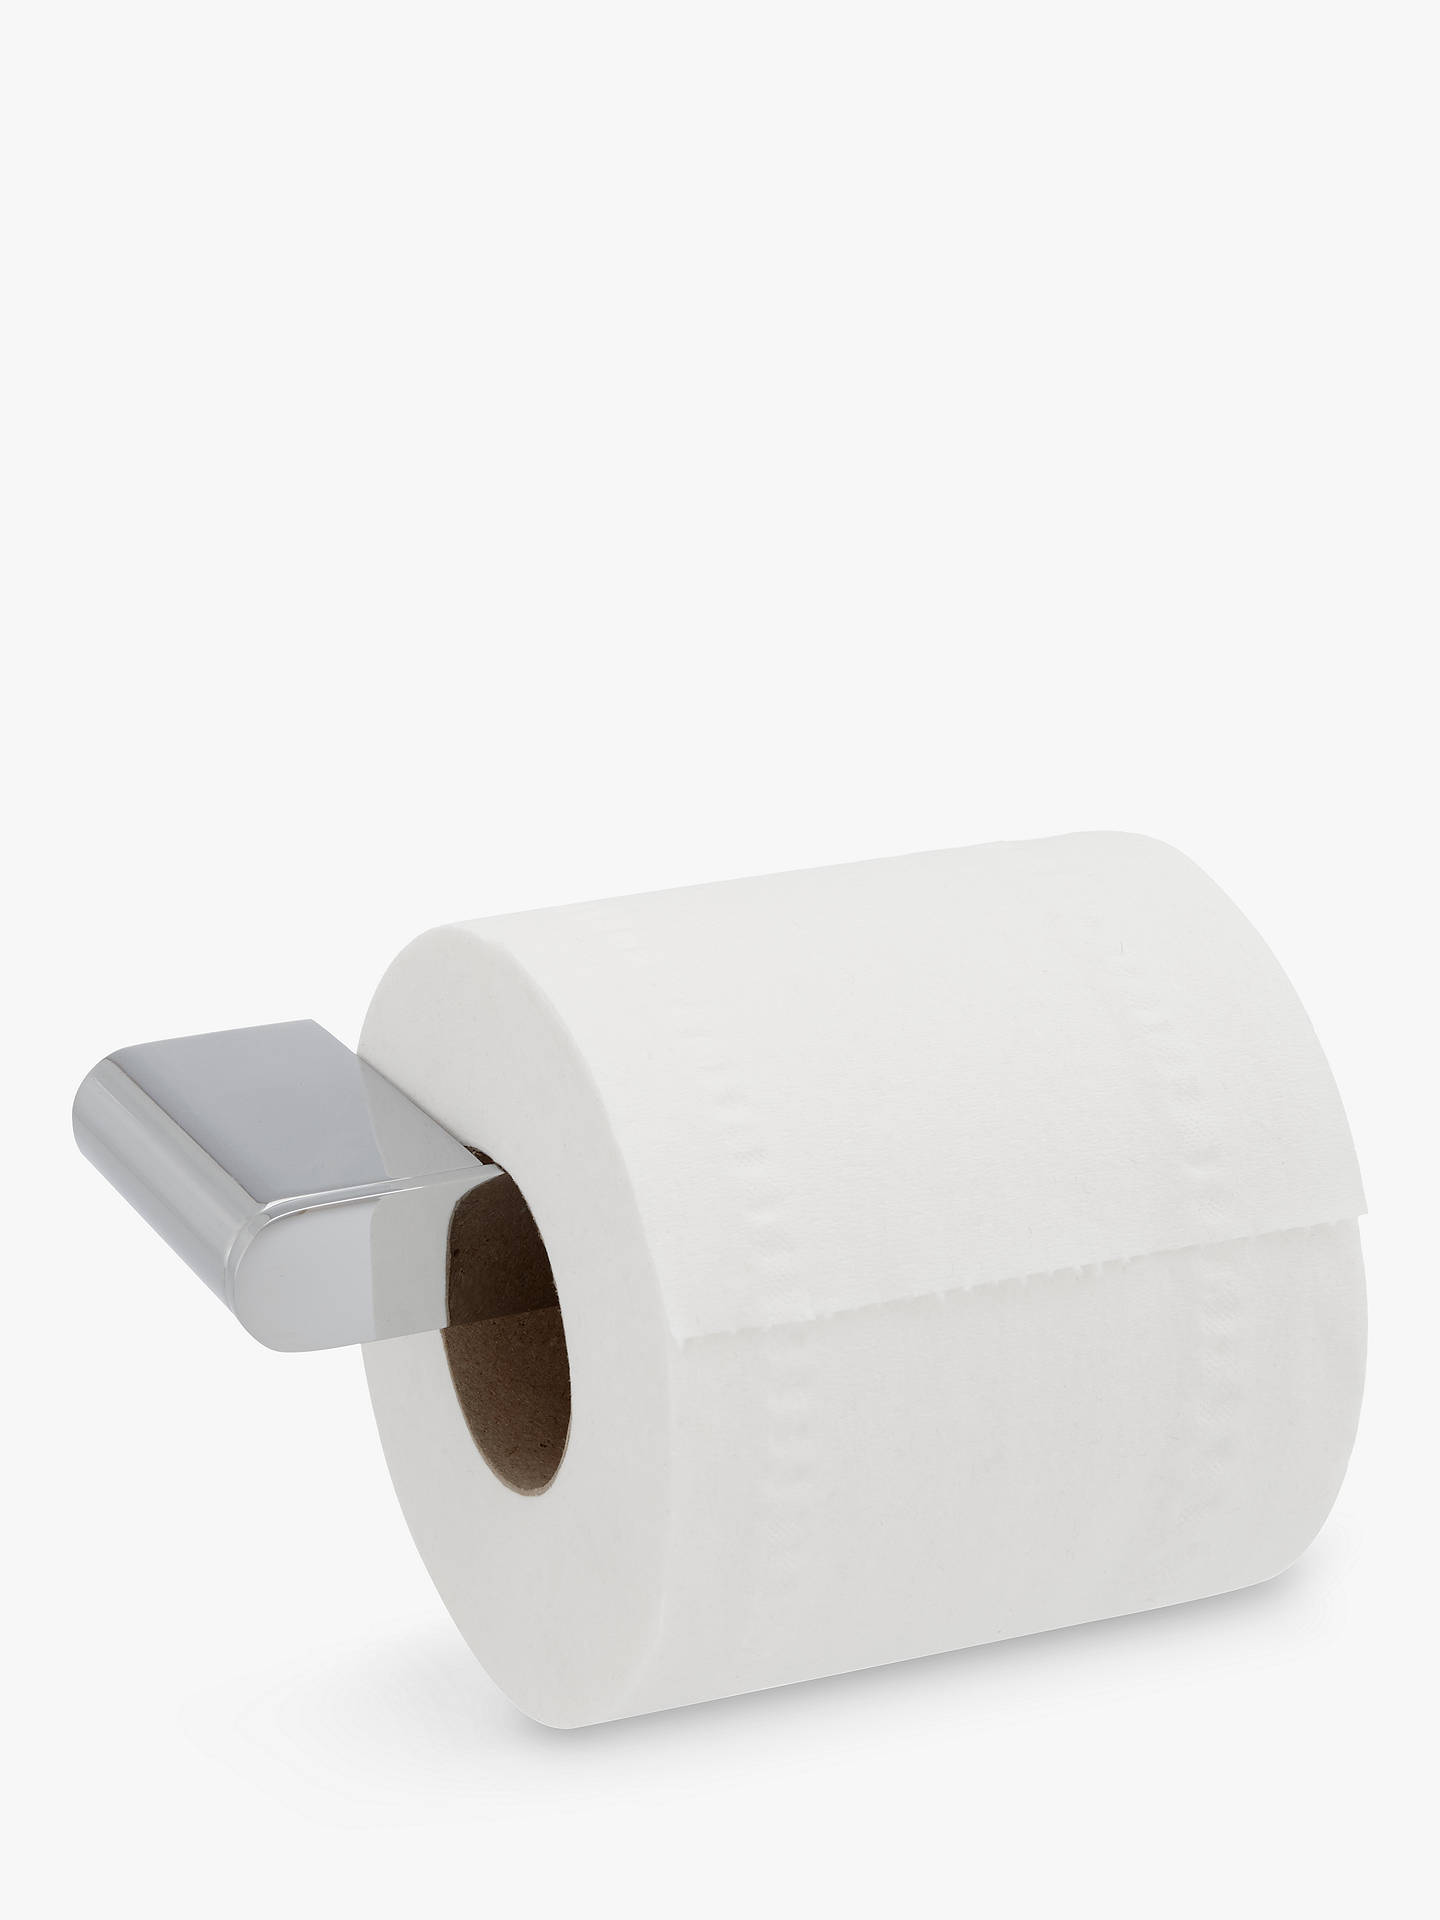 Buy Design Project by John Lewis No.025 Toilet Roll Holder Online at johnlewis.com